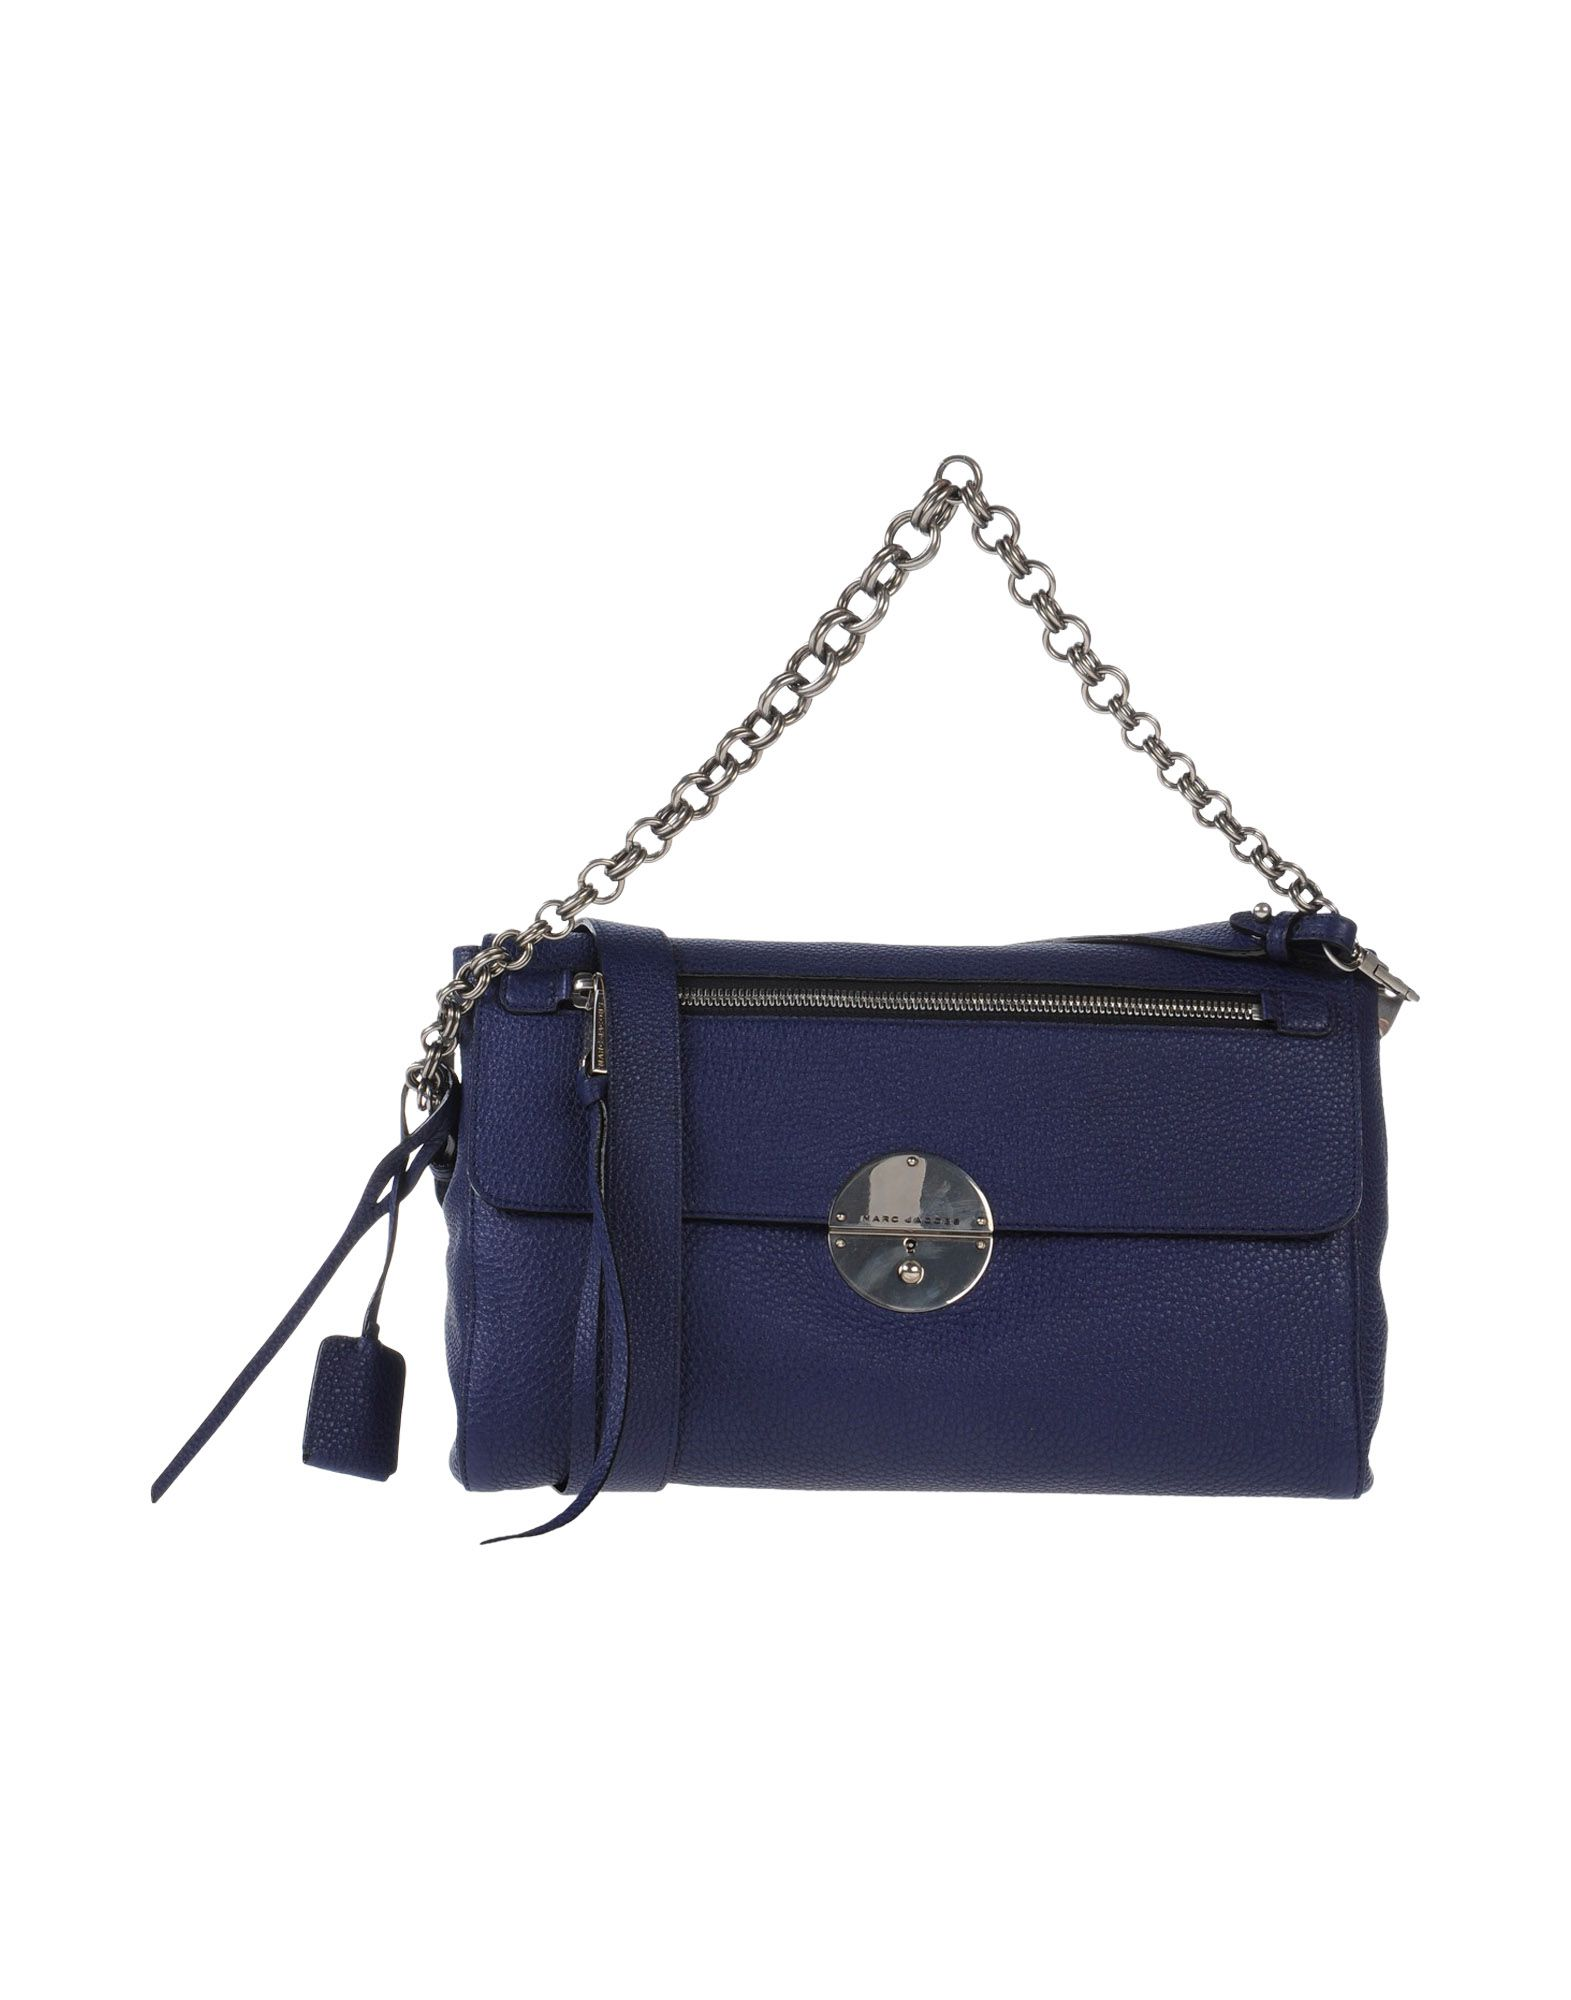 marc jacobs female marc jacobs handbags